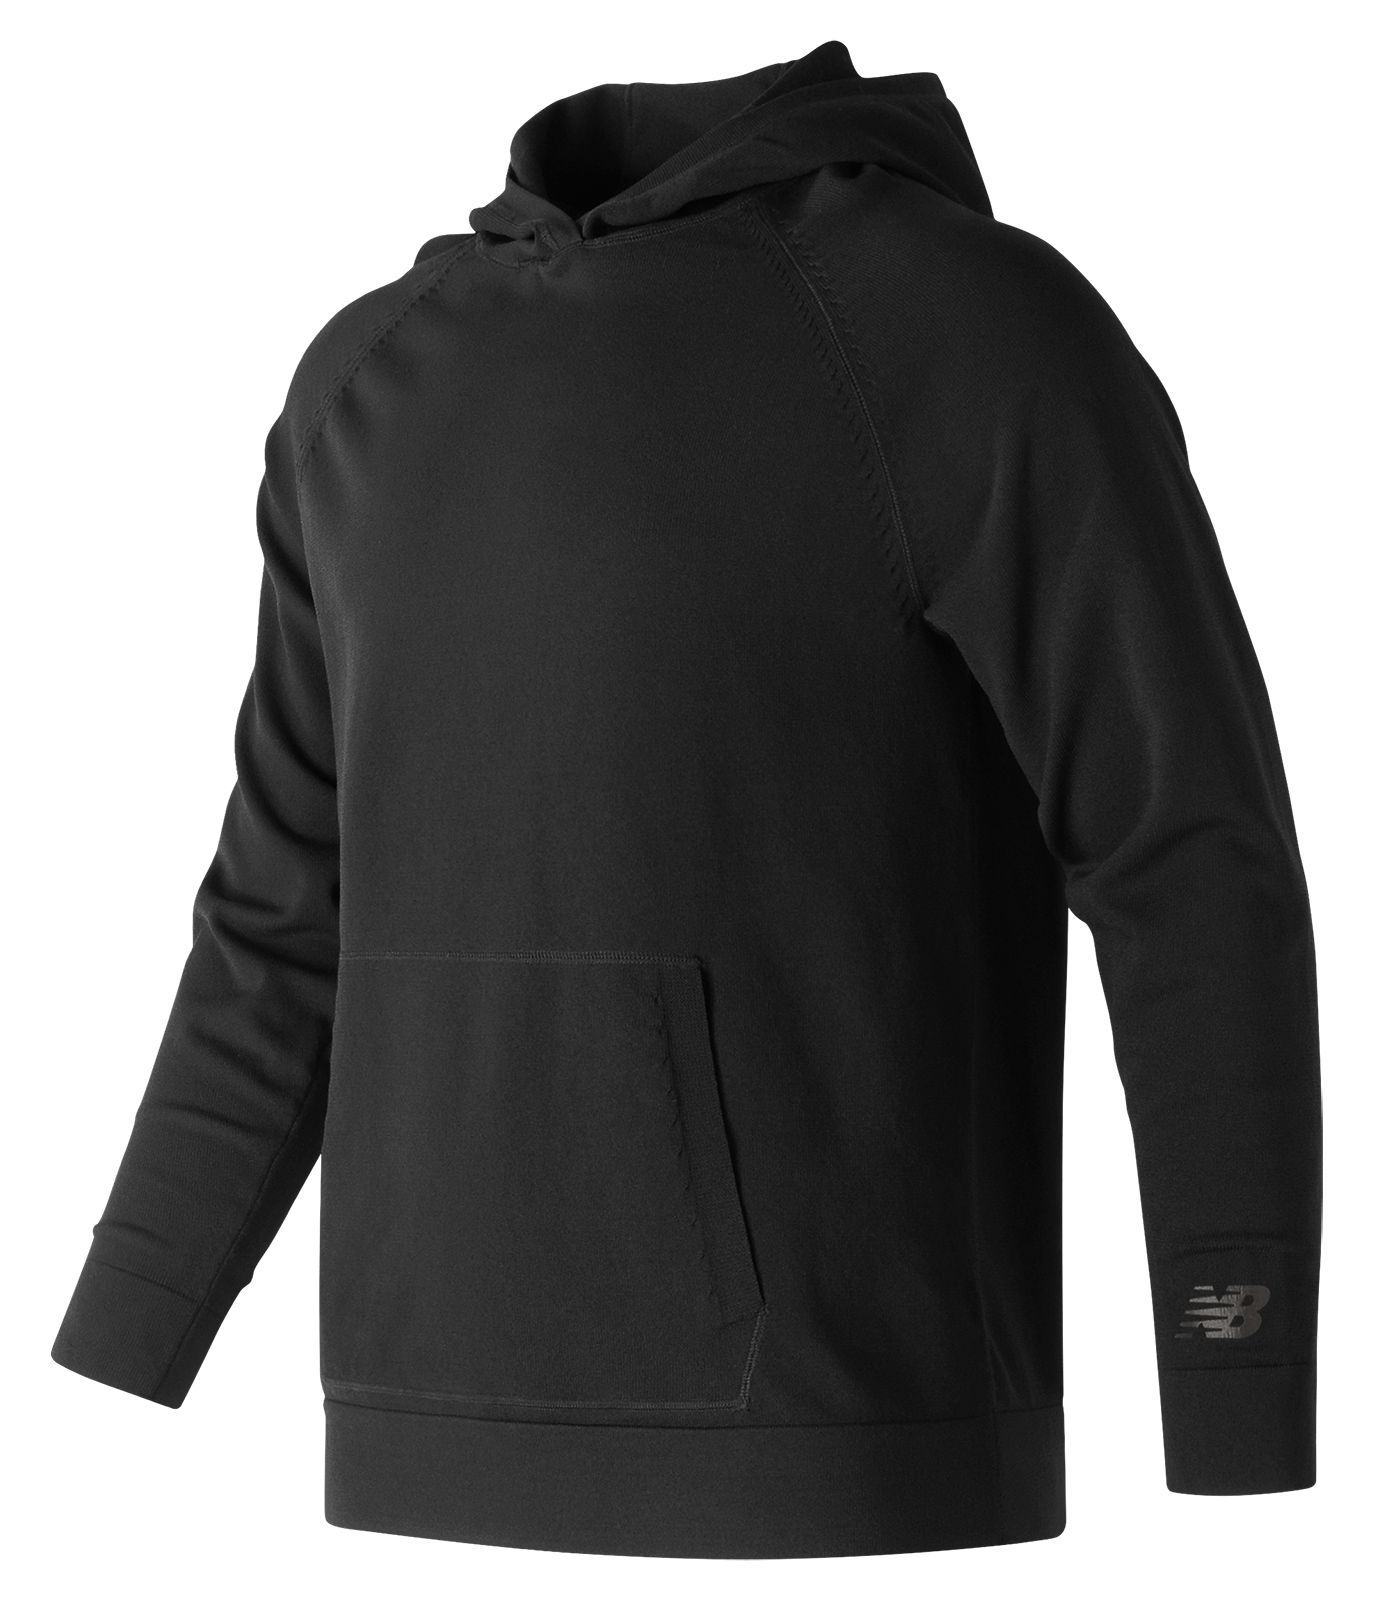 247 Luxe Knit Pullover Hoodie